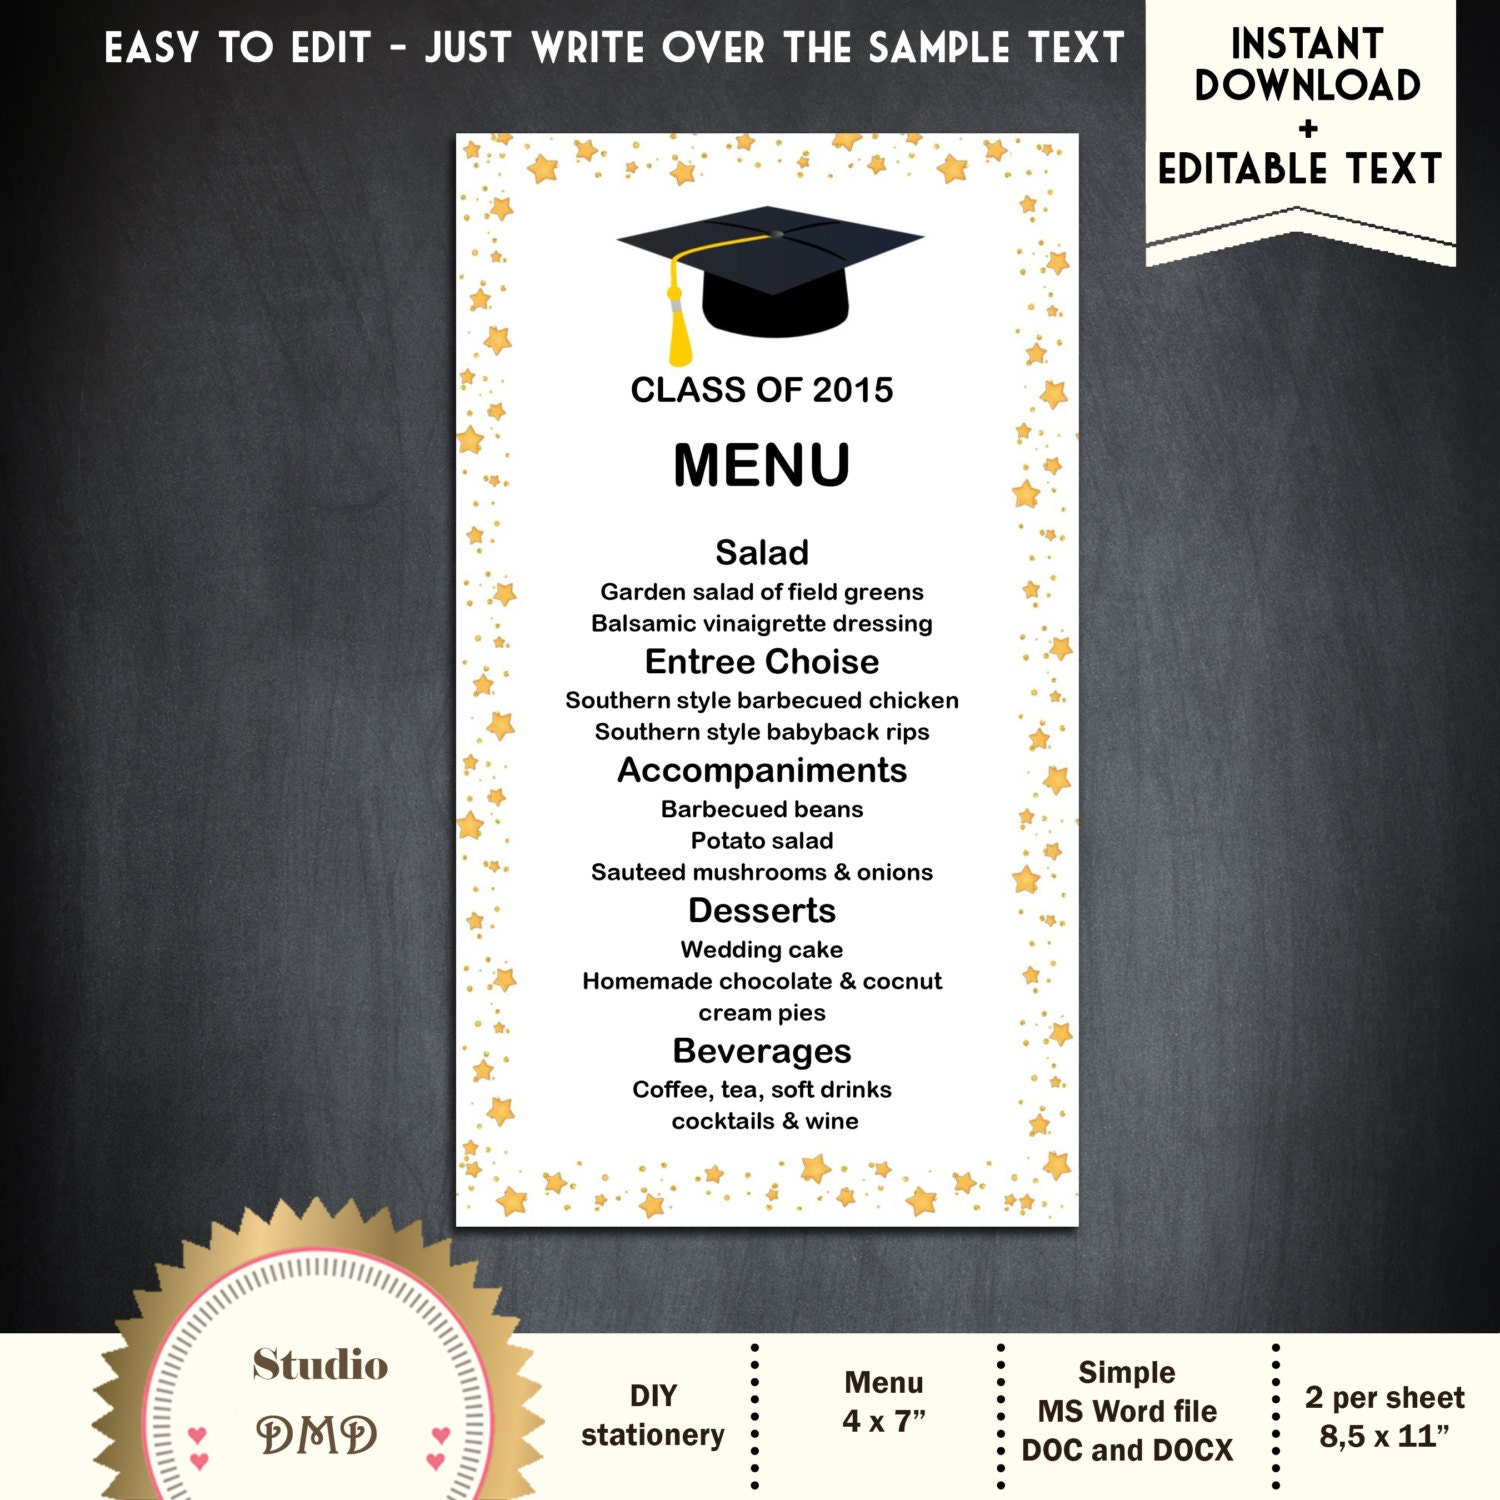 Sample Menu Card - Design Templates